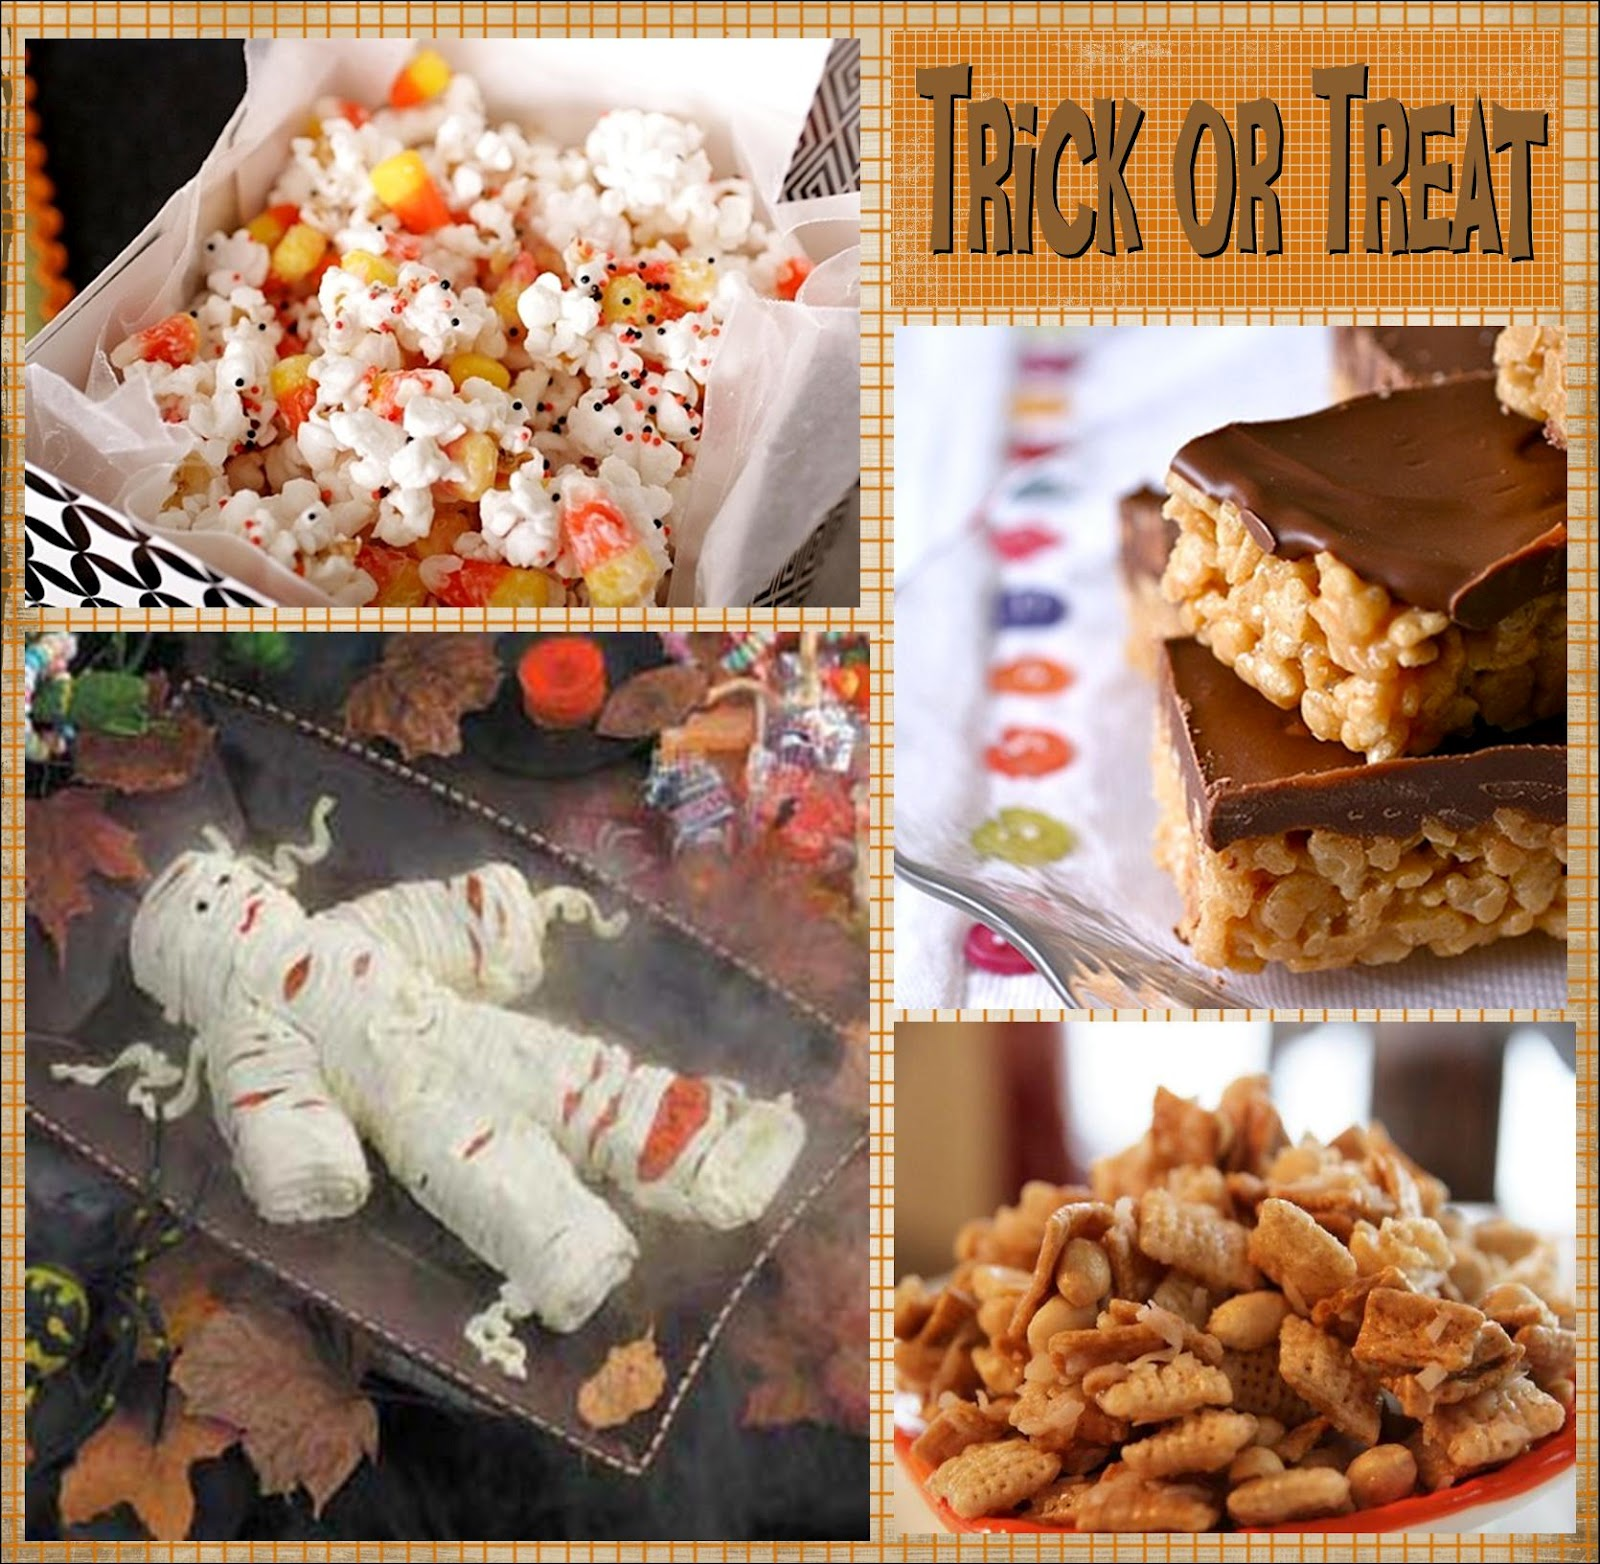 Need a last-minute dessert for a Halloween party? Use boxed brownie mix and your favorite Halloween candies to whip up these festive treats in no time. We love using mini marshmallows, candy corn, and chocolate chips, but a little creativity never hurts—especially when there's candy involved!